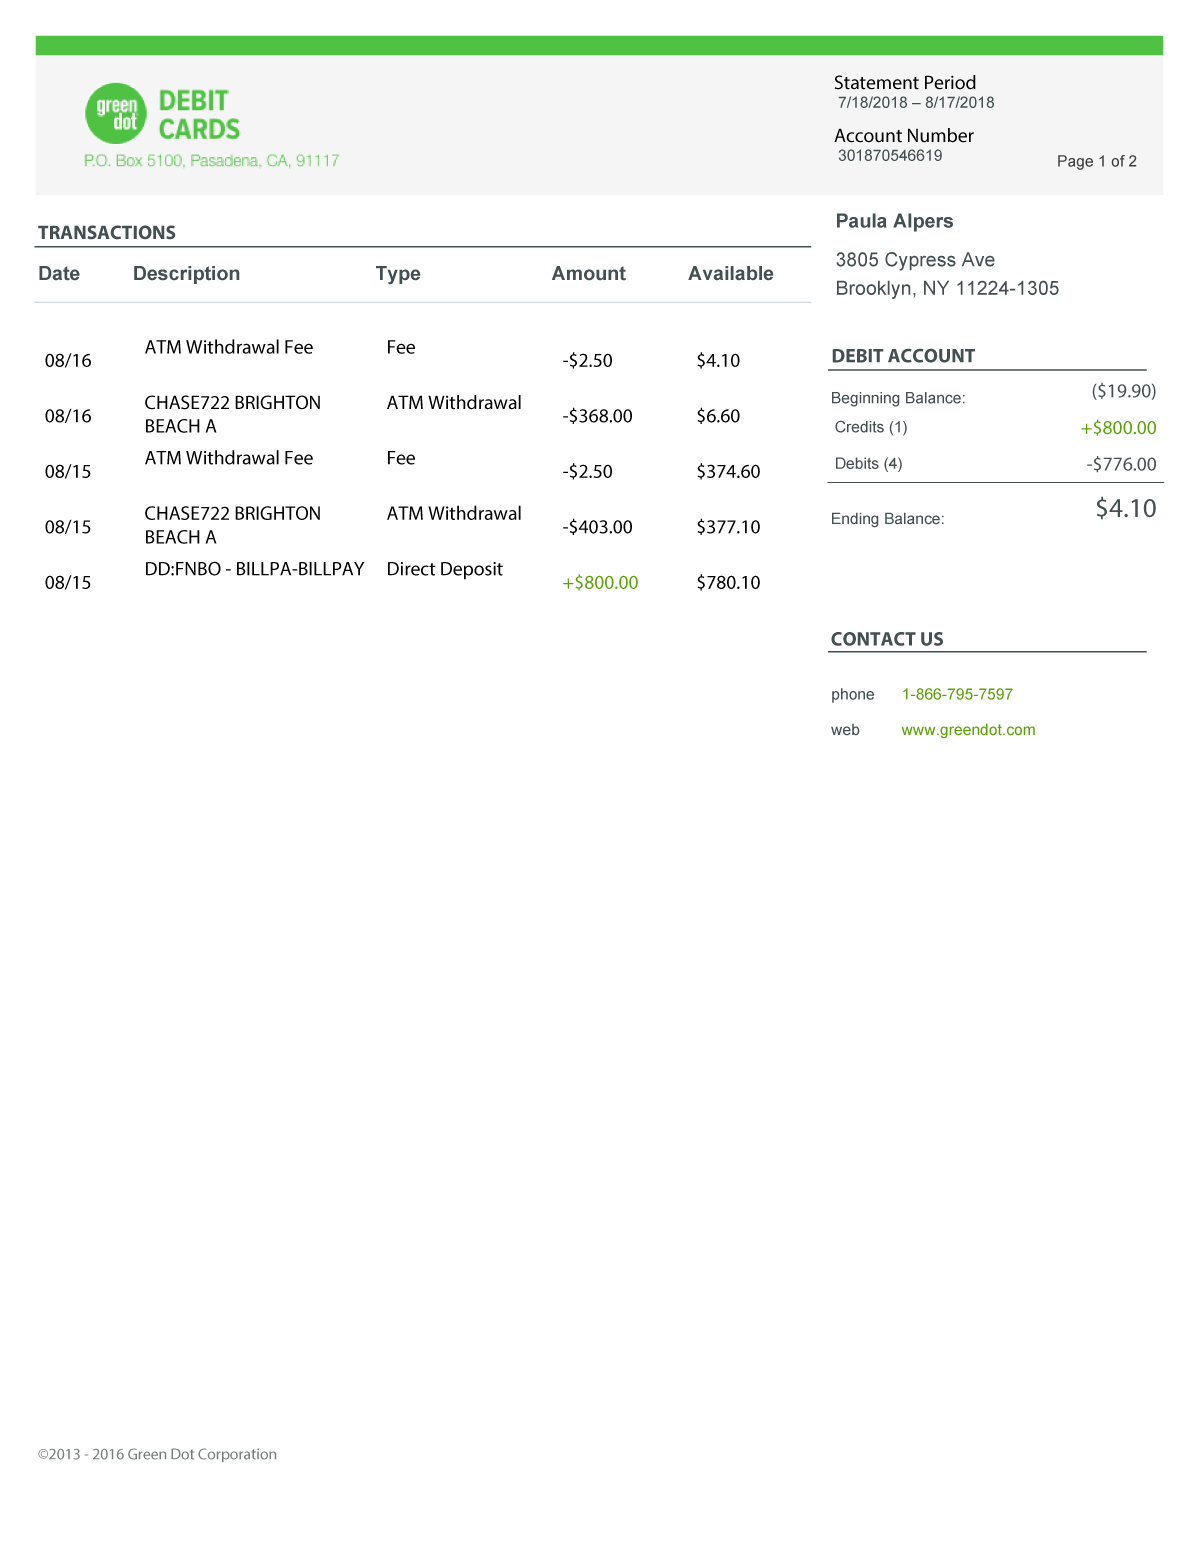 Green Dot Bank Statement Psd Template In 2021 Bank Statement Statement Template Psd Templates